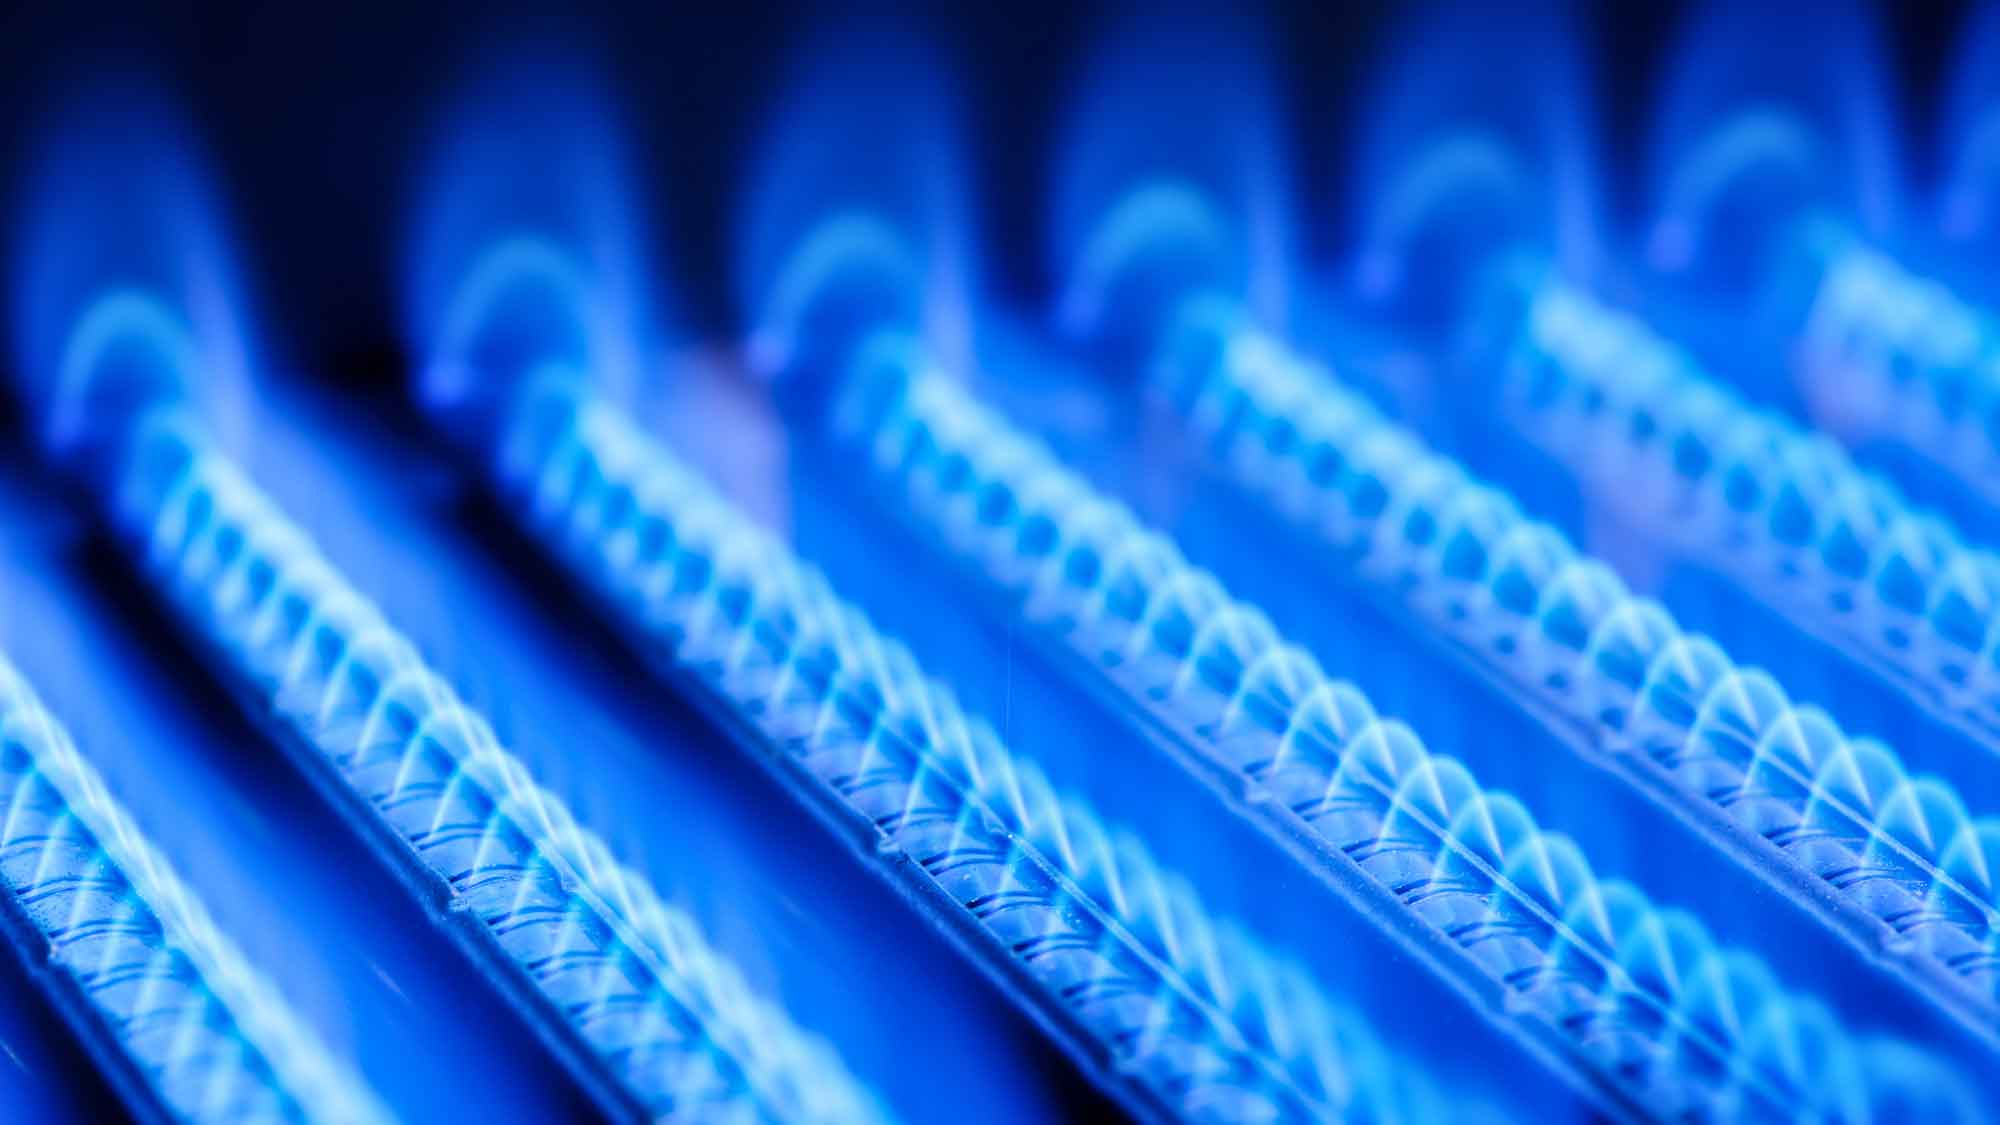 commercial gas safety certificate essex maintenance leigh on sea flames